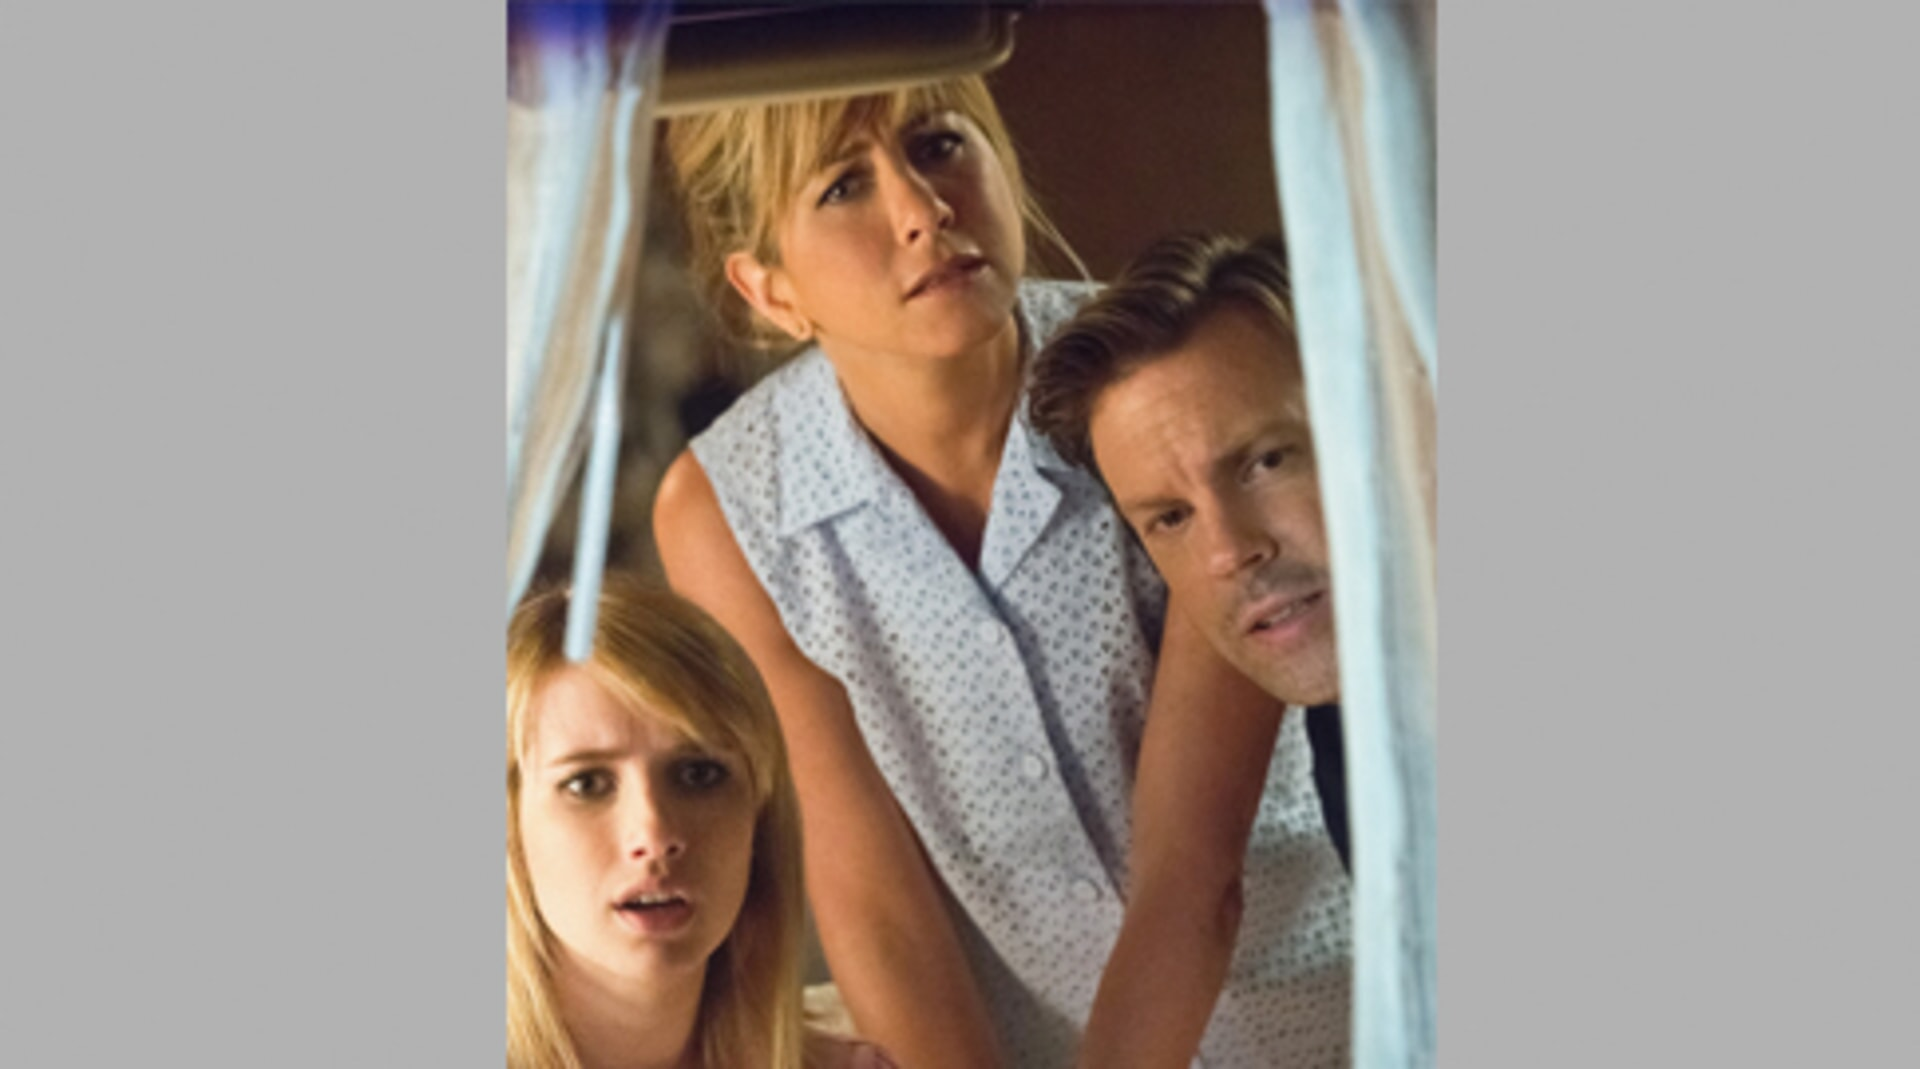 We're the Millers - Image 2